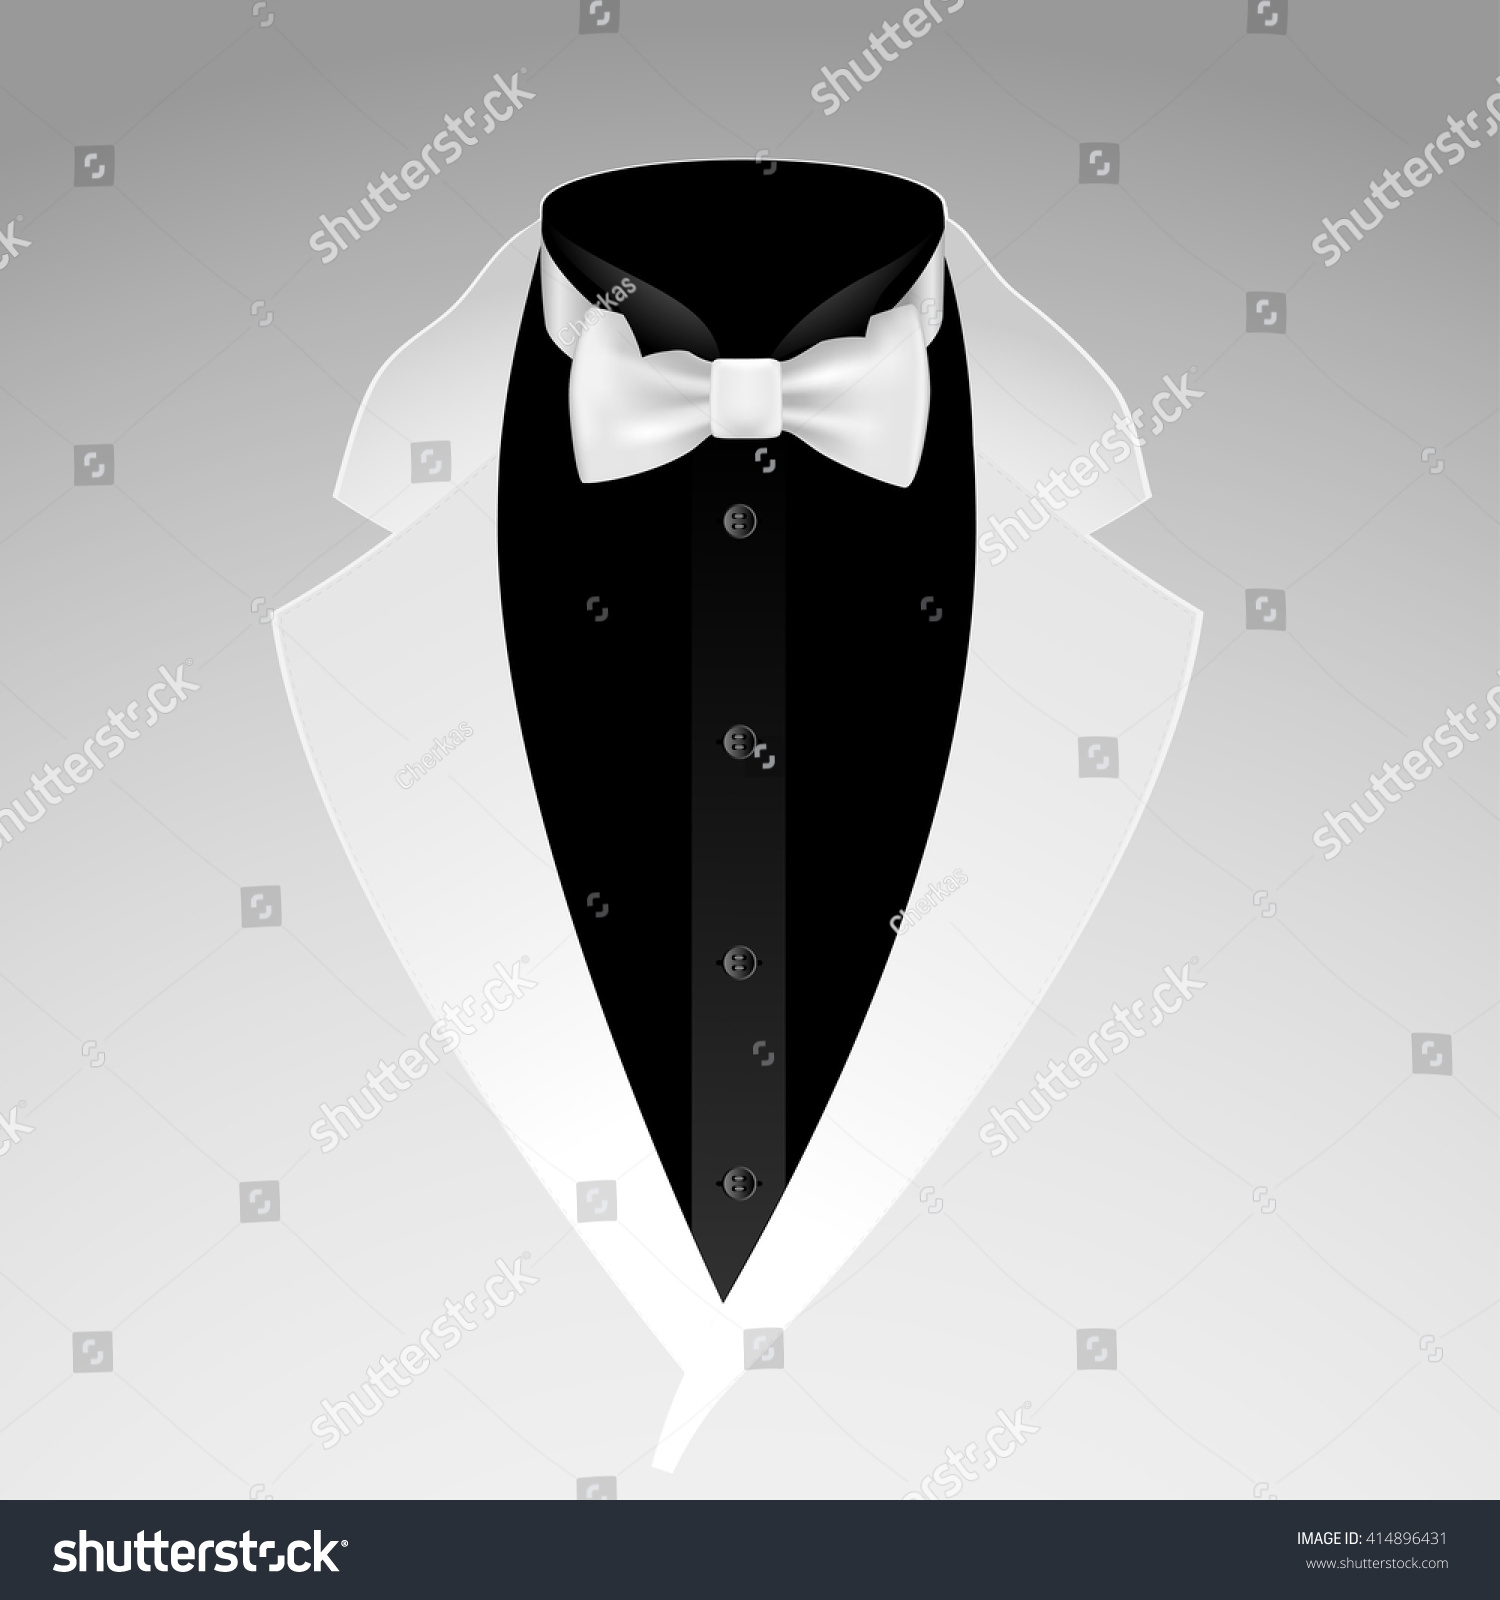 Illustration Tuxedo Bow Tie On Grey Stock Vector Royalty Free Tying Diagram Of With Background